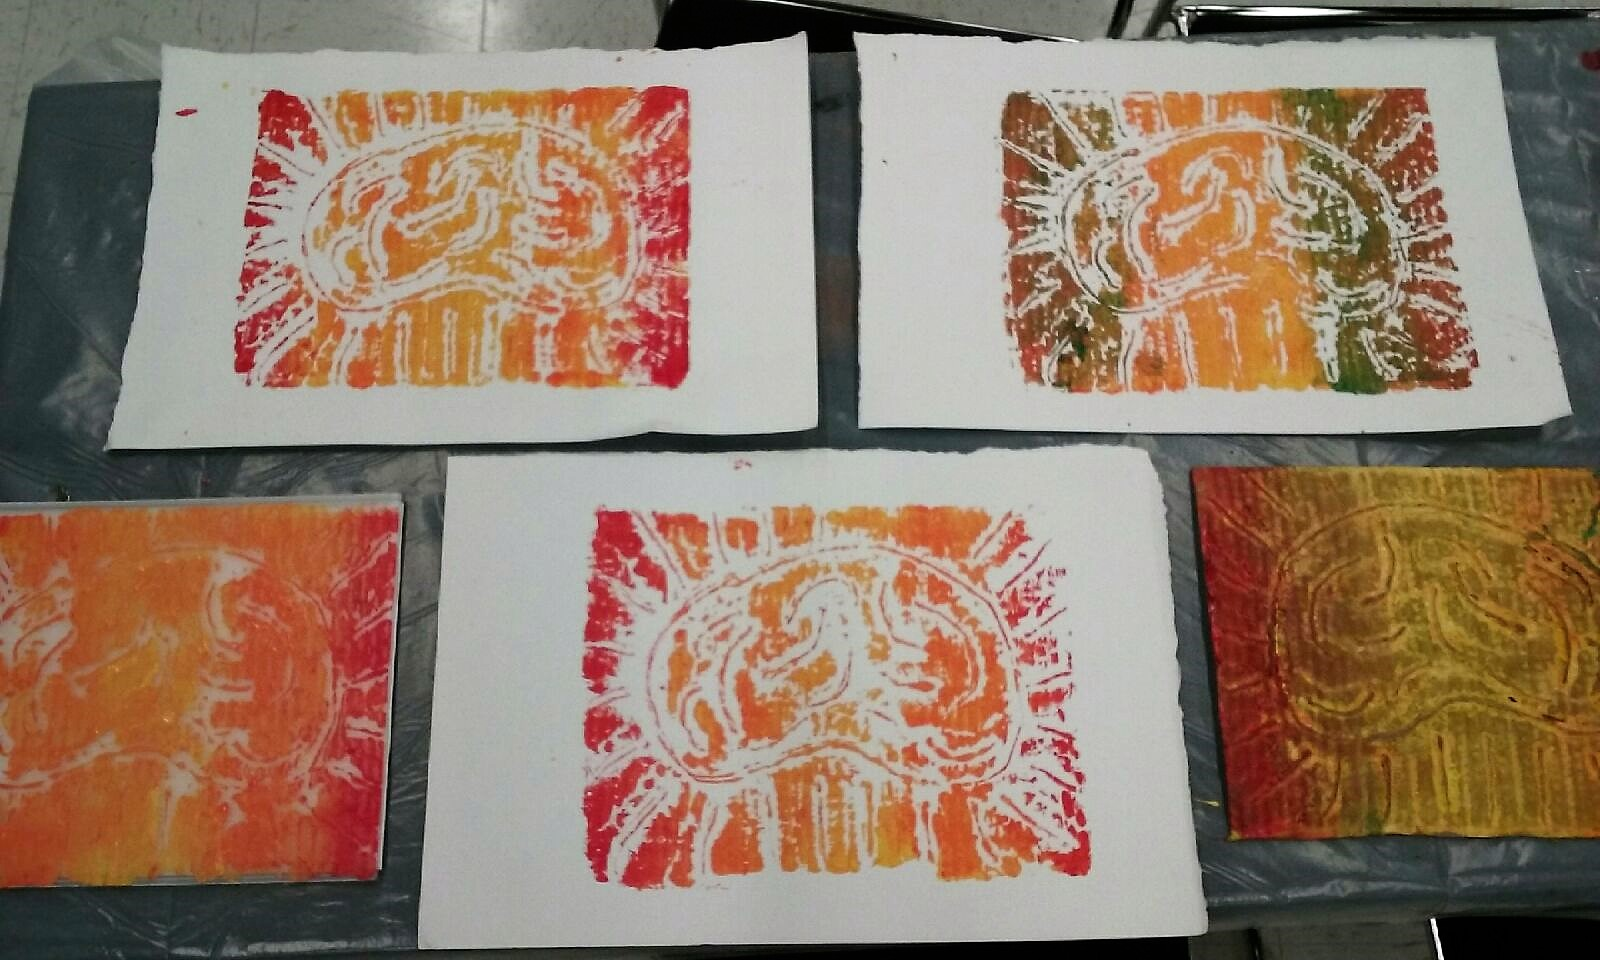 Prints by Peter Buotte at the Open Studio